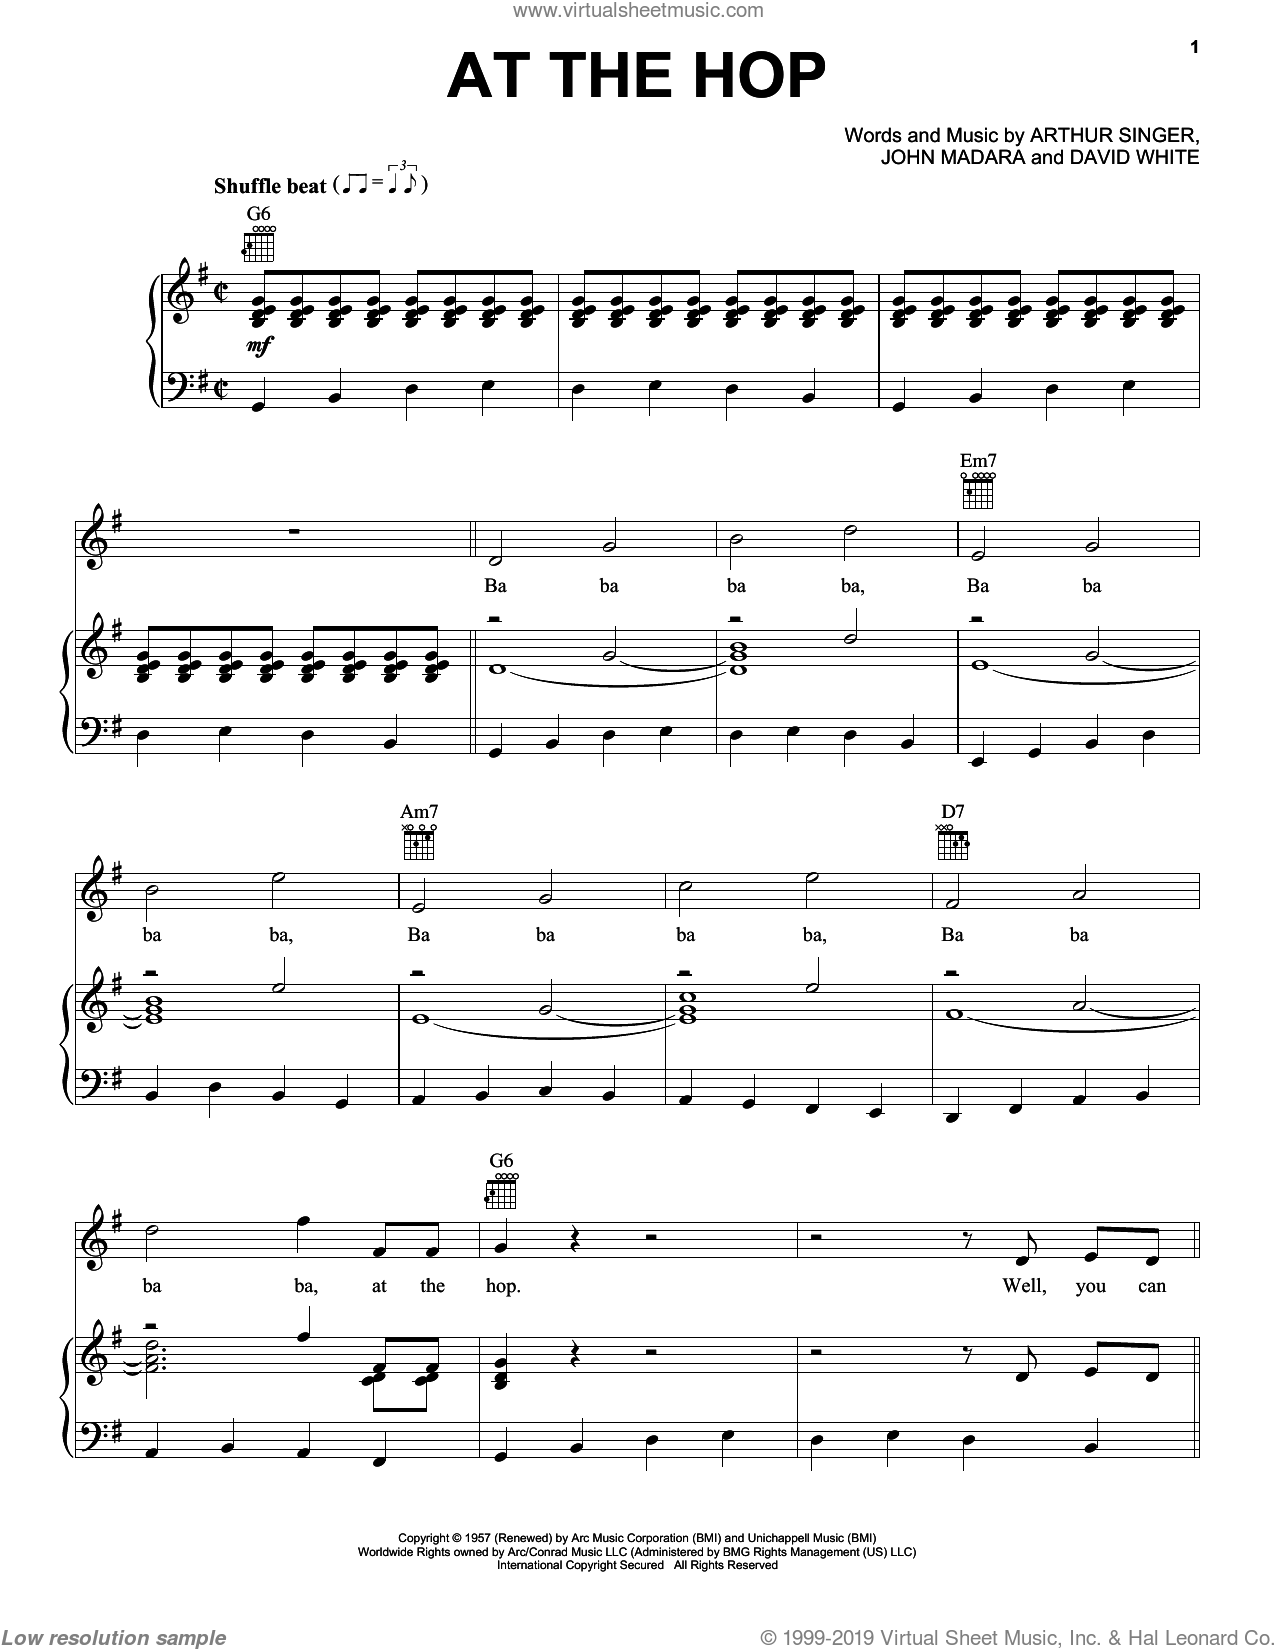 At The Hop sheet music for voice, piano or guitar by Danny & The Juniors, Arthur Singer, David White and John Madara, intermediate skill level